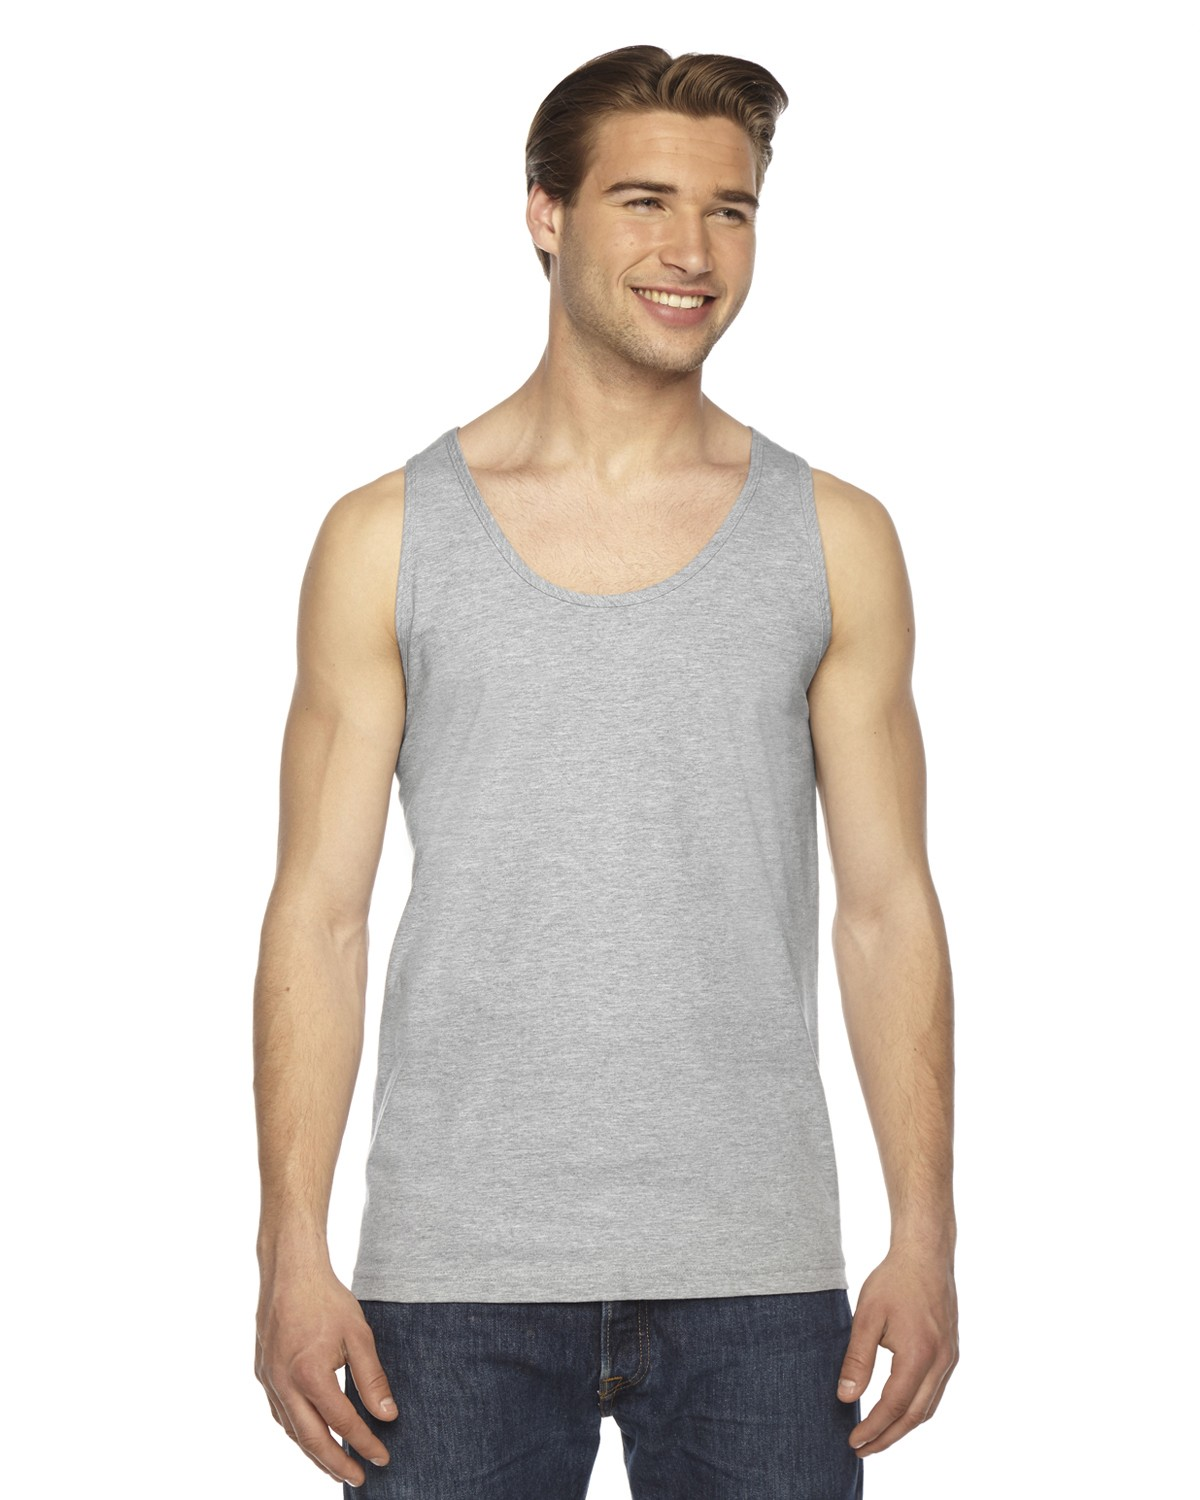 2408W American Apparel HEATHER GREY